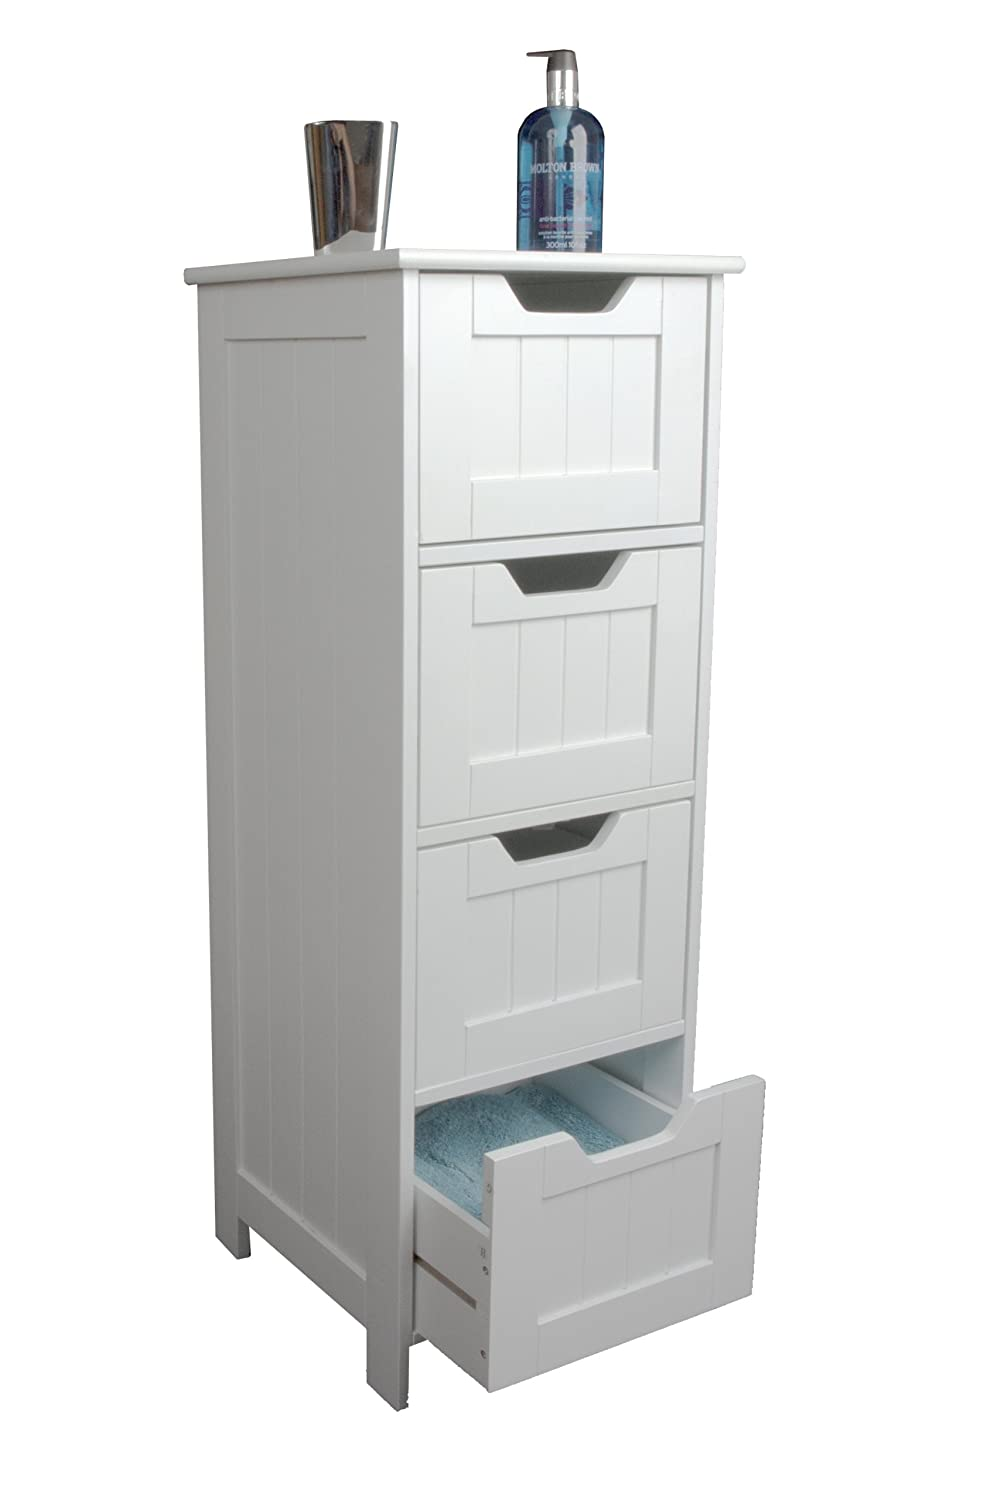 Bathroom Cabinet Storage - Slim Design Drawer Unit, White Wooden and Freestanding, suit Bedroom, Living and Hallway - Sennen range by Elegant Brands